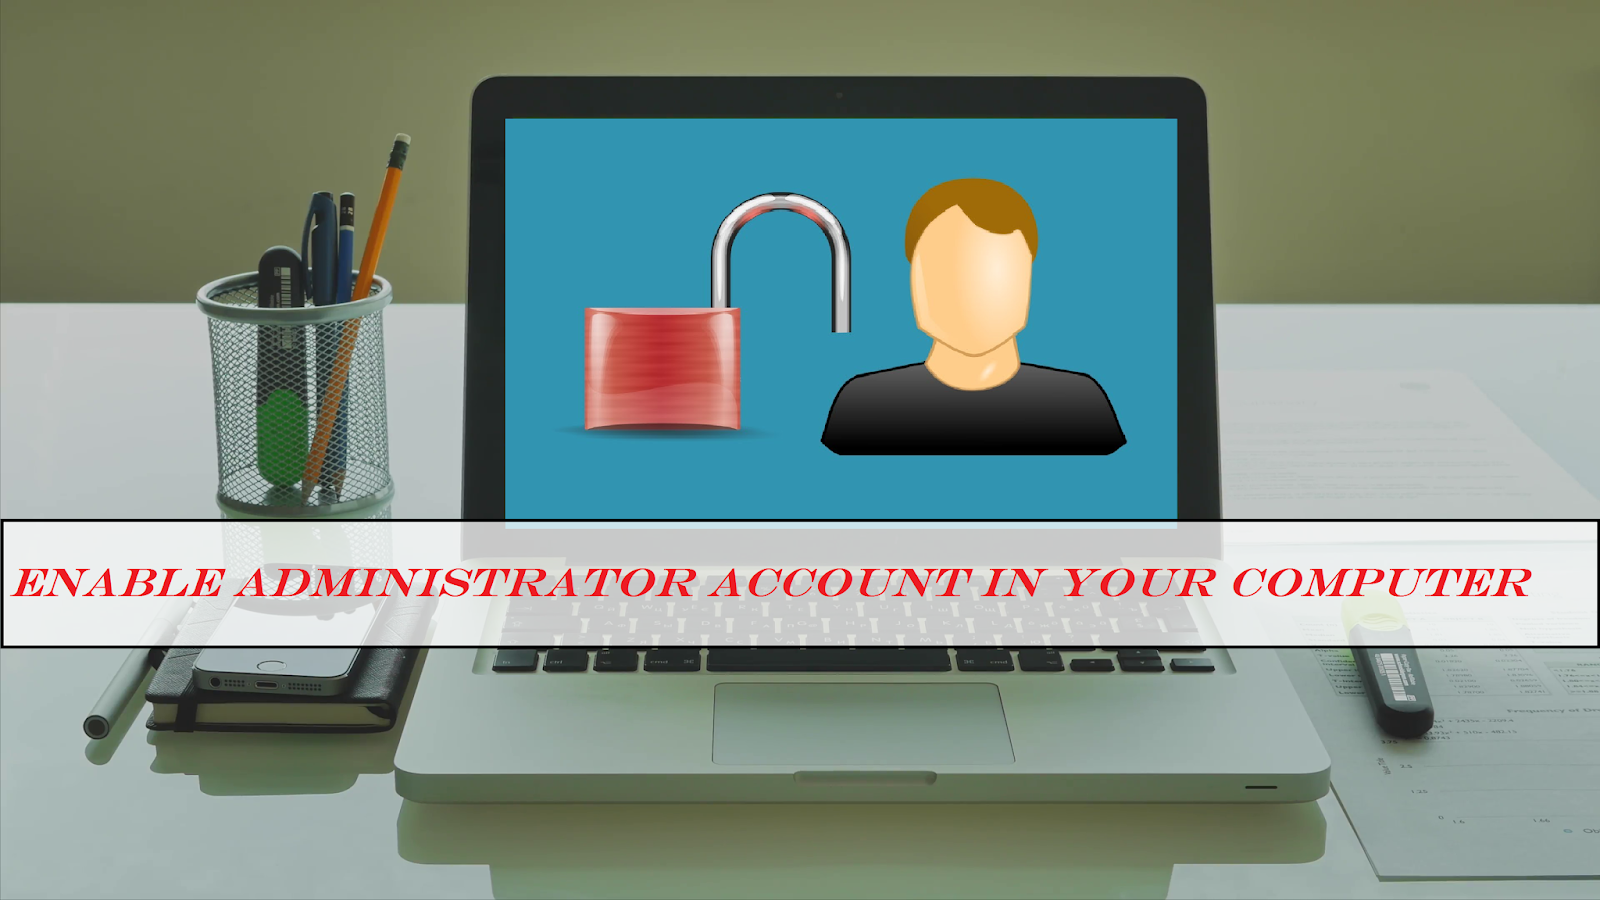 Hidden-Administrator-Account-Enable-Kaise-Kare